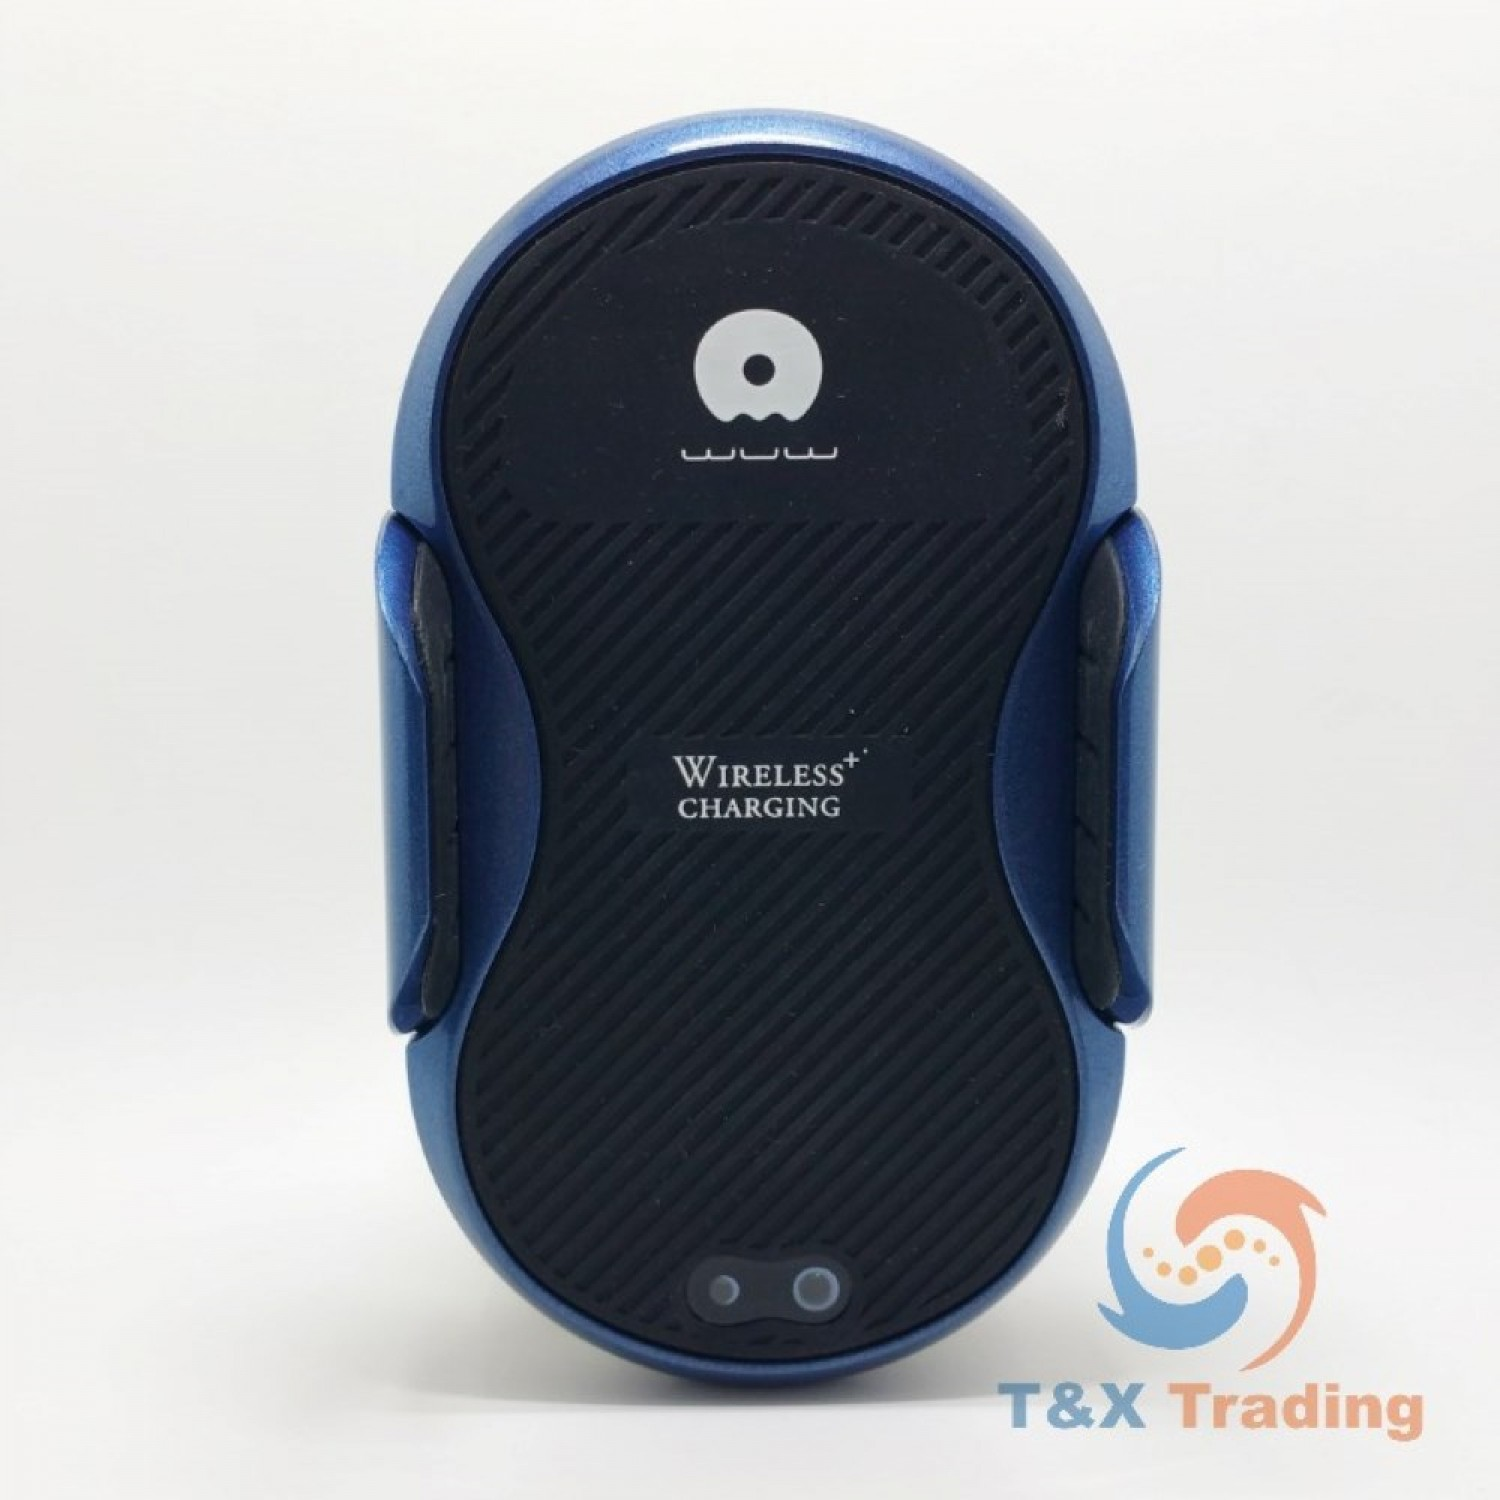 WUW Fast Wireless Electric Car Charger and Air / Stand Holder